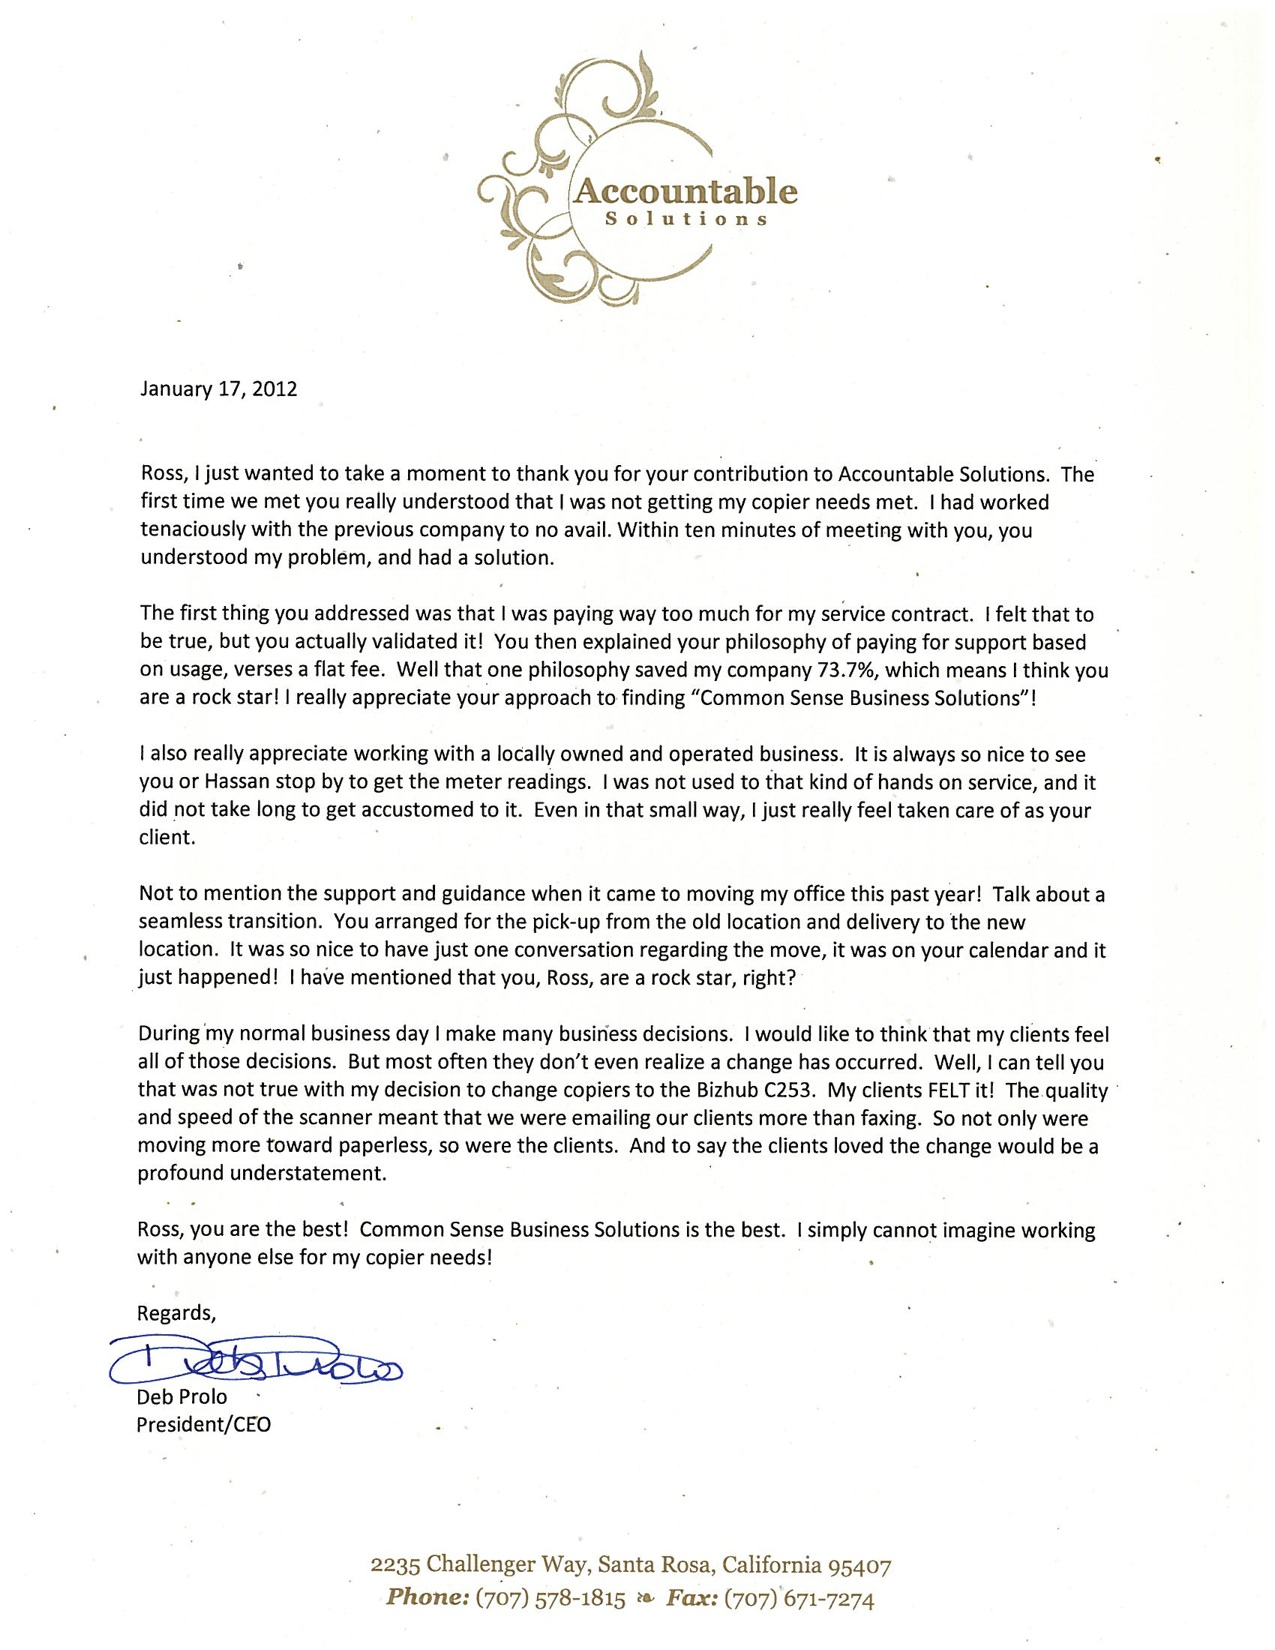 accountable solutions testimonial letter